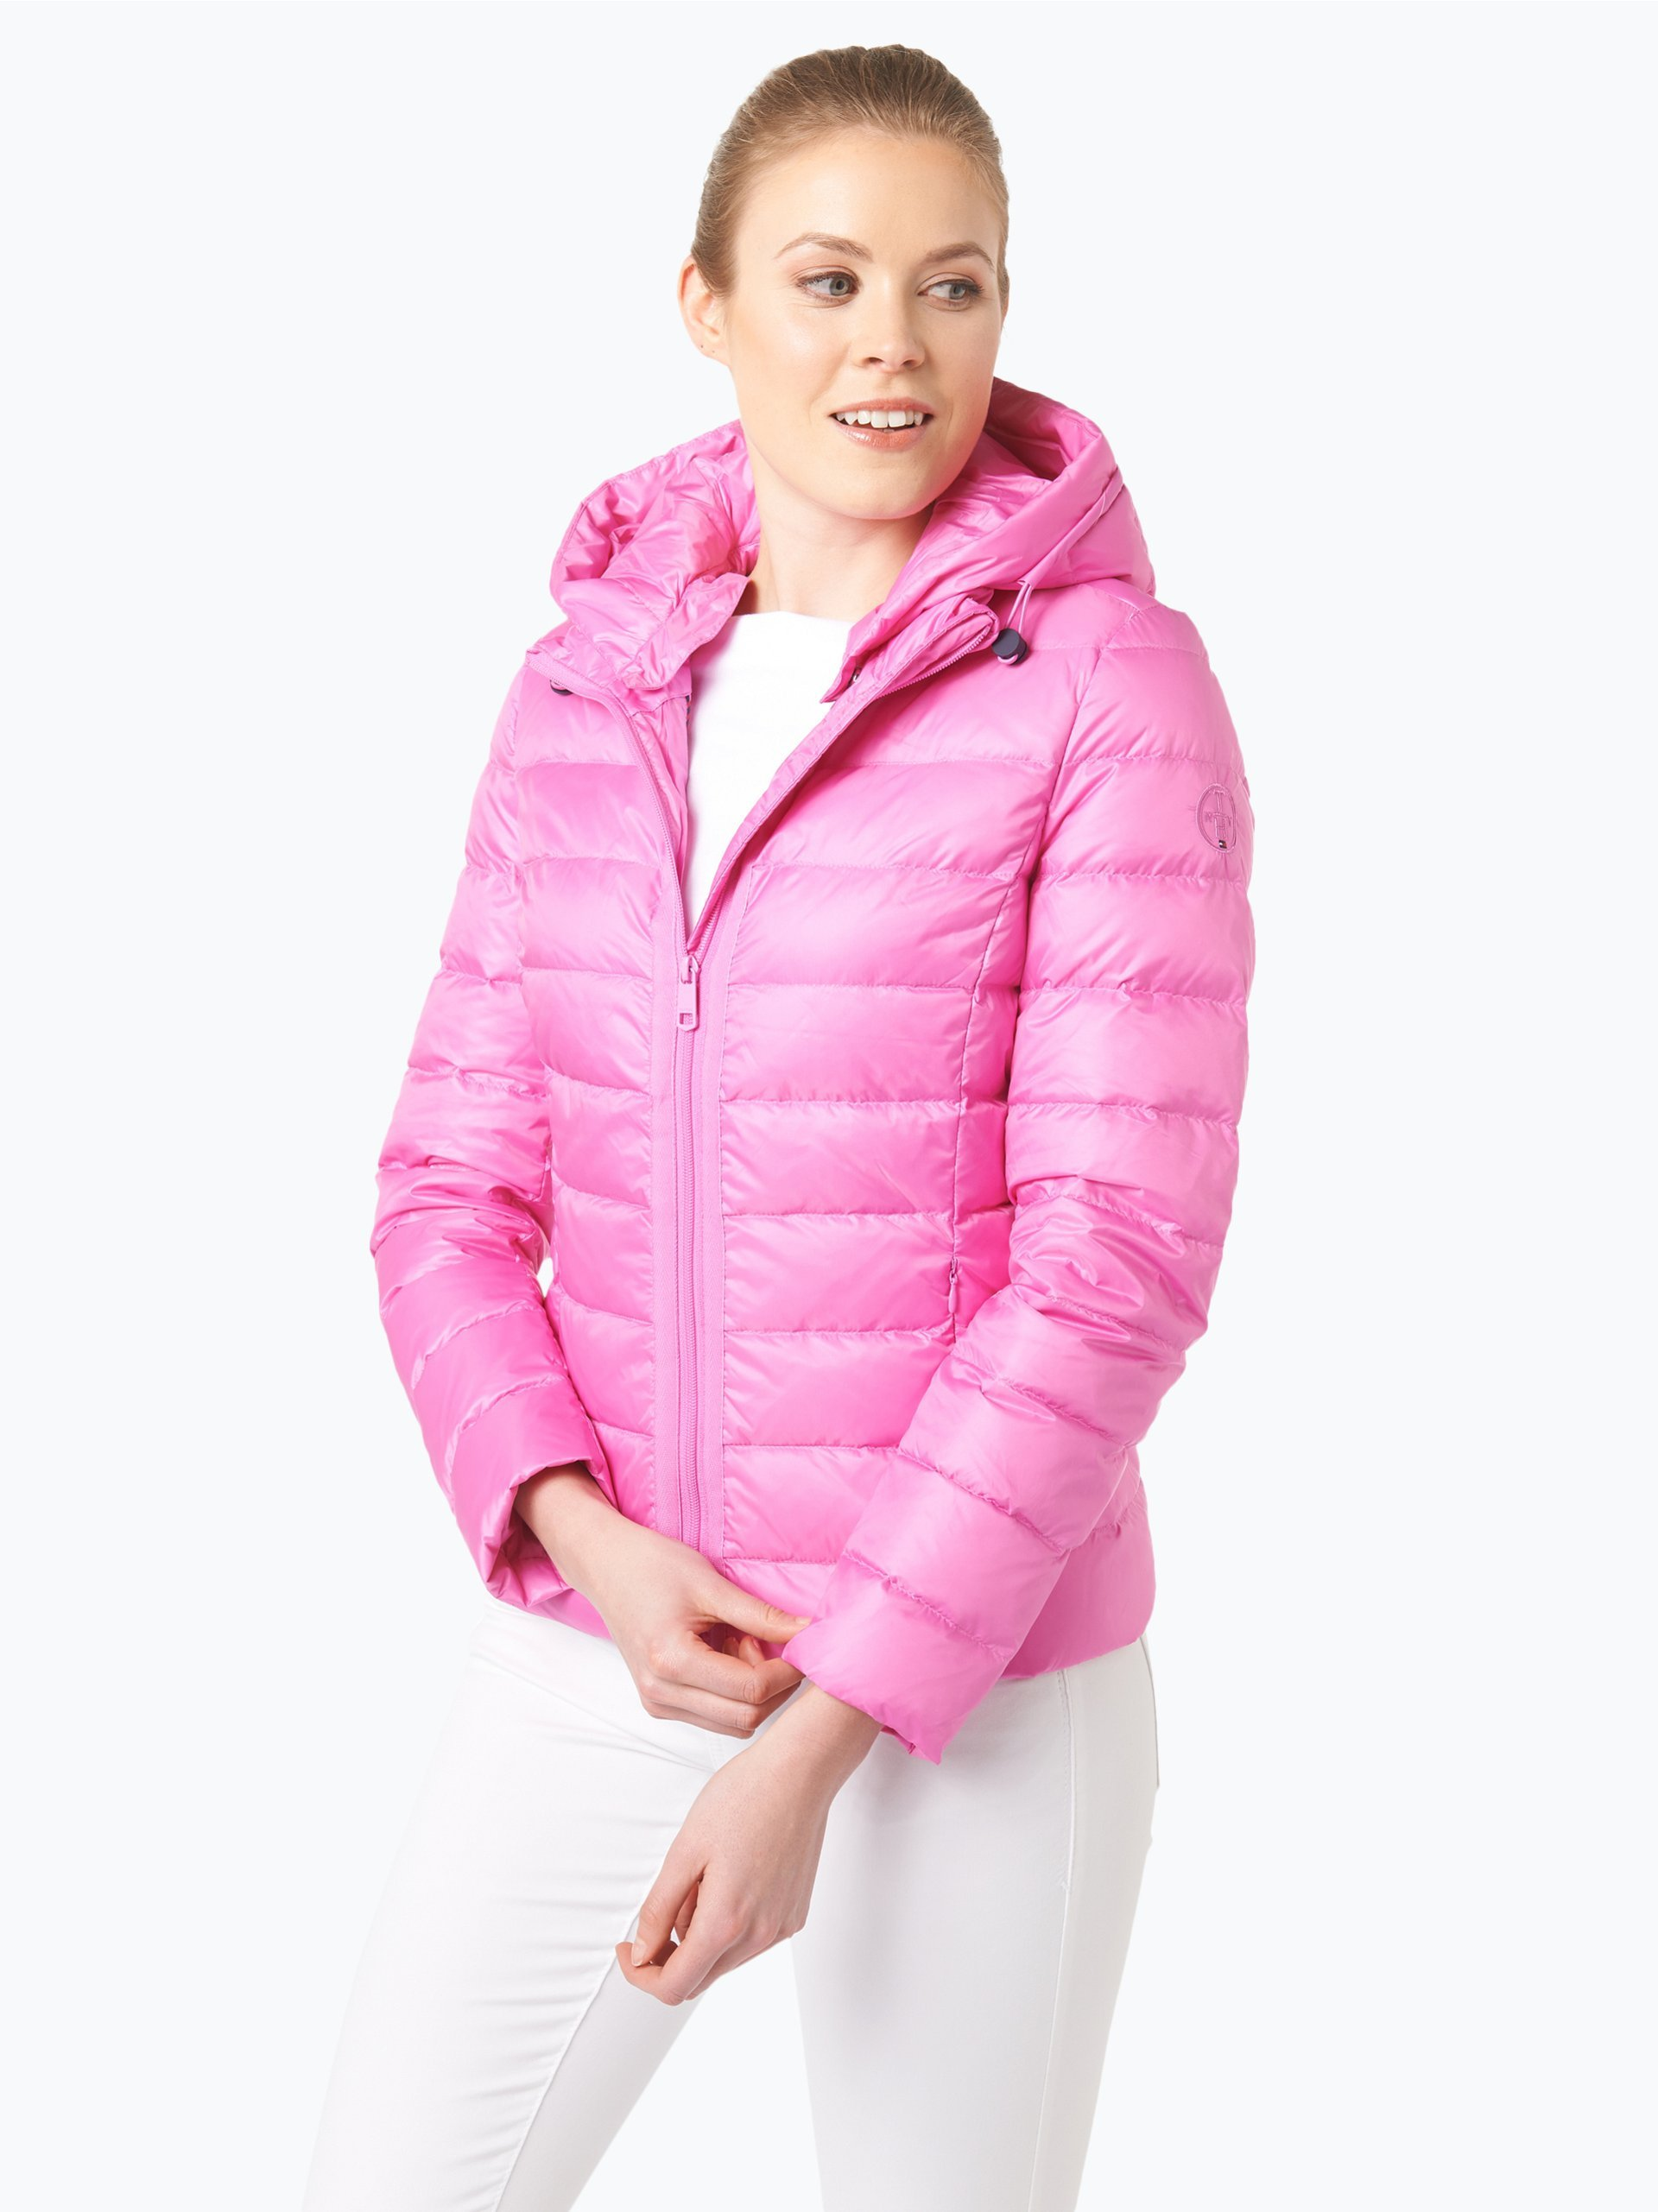 tommy hilfiger damen daunenjacke pink uni online kaufen. Black Bedroom Furniture Sets. Home Design Ideas